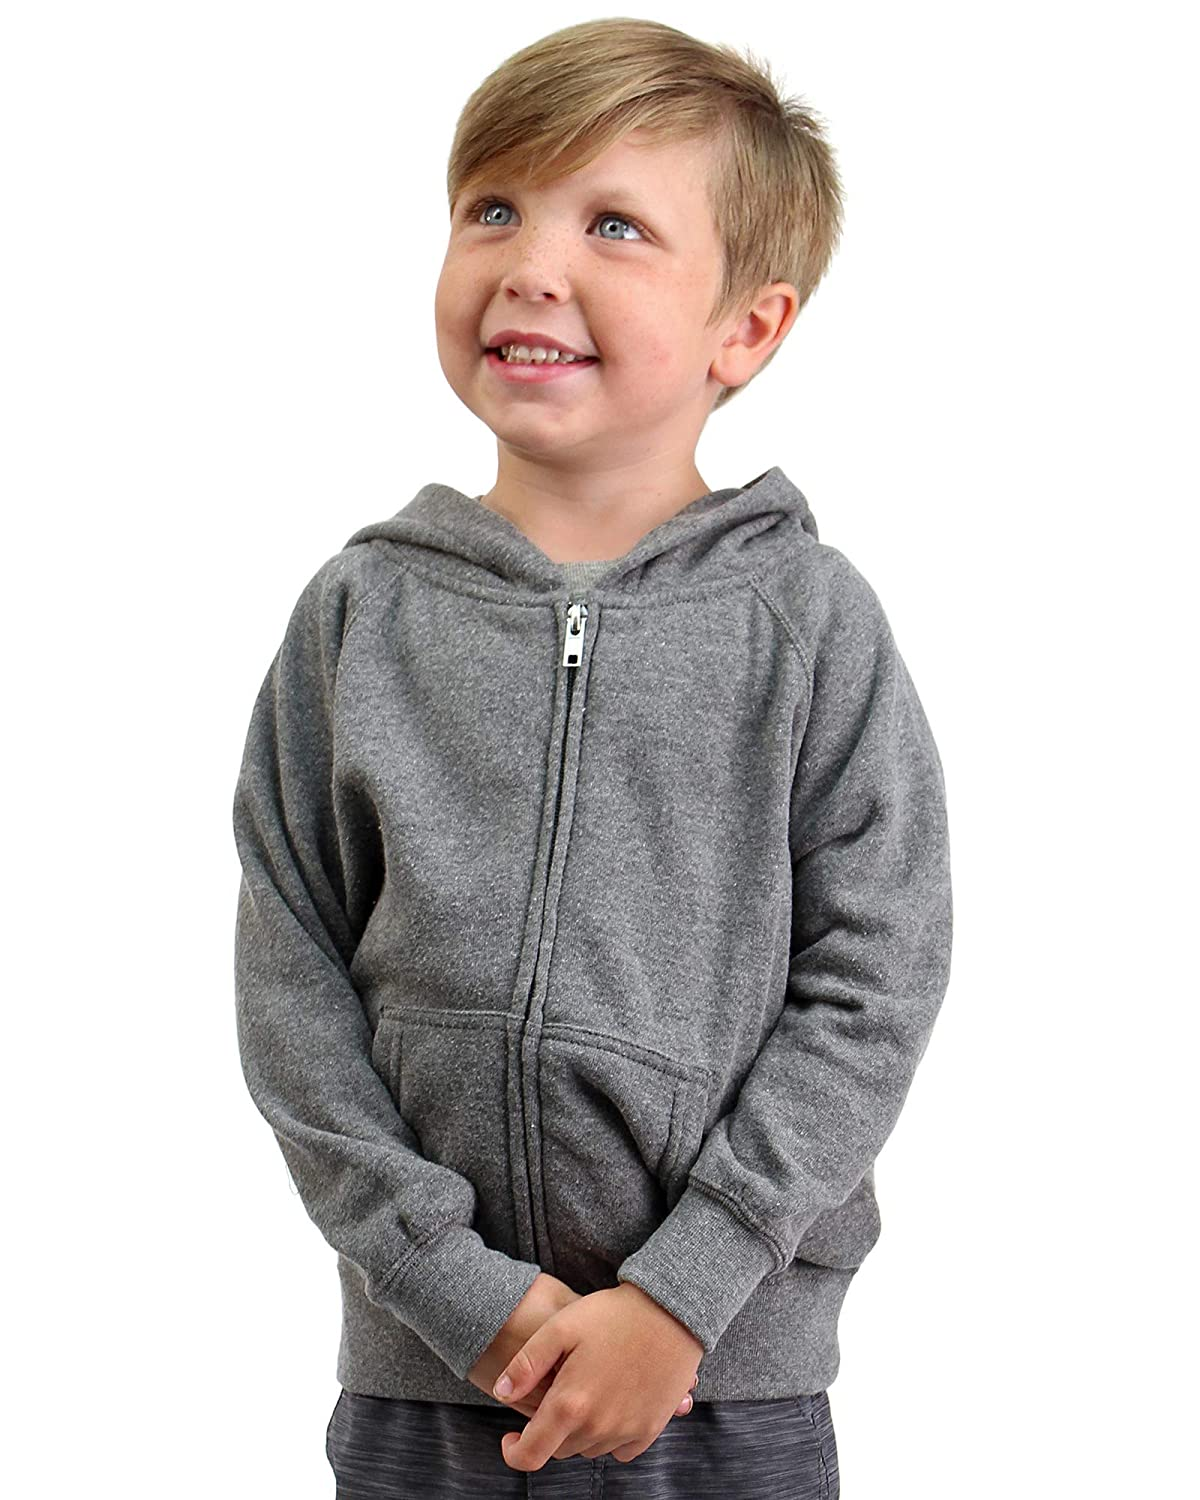 Global Blank Youth Lightweight Zip Up Soft Fleece Hoodie for Boys Girls Toddlers